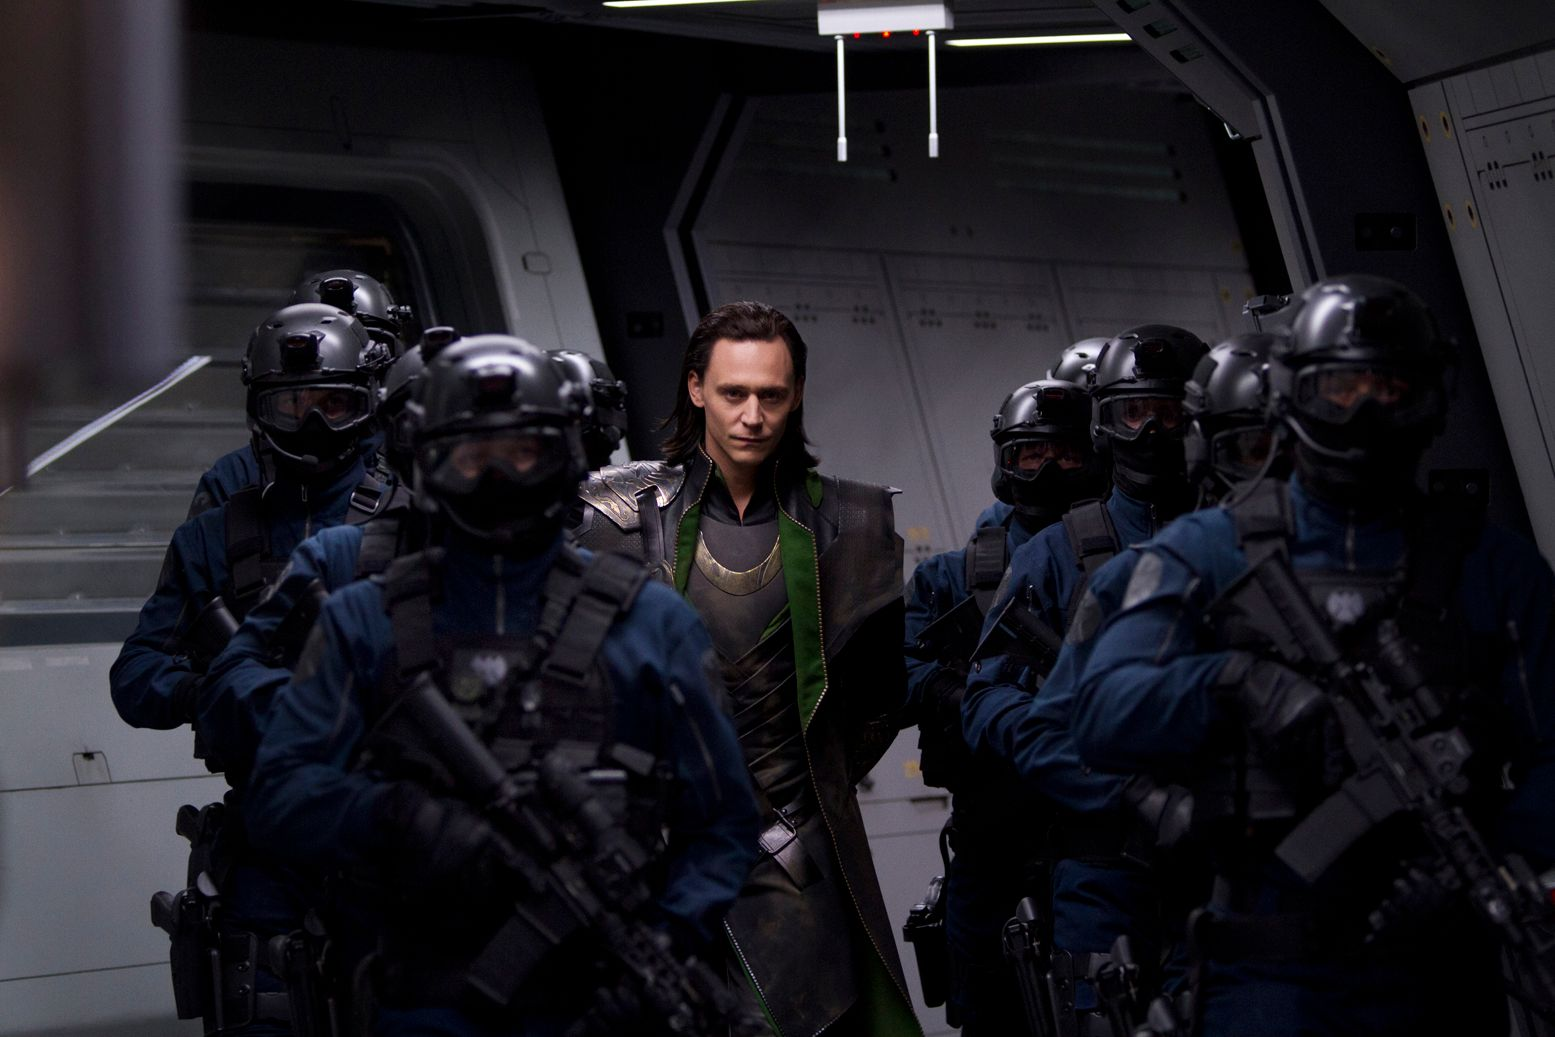 THE AVENGERS Movie Images Featuring Robert Downey Jr ...